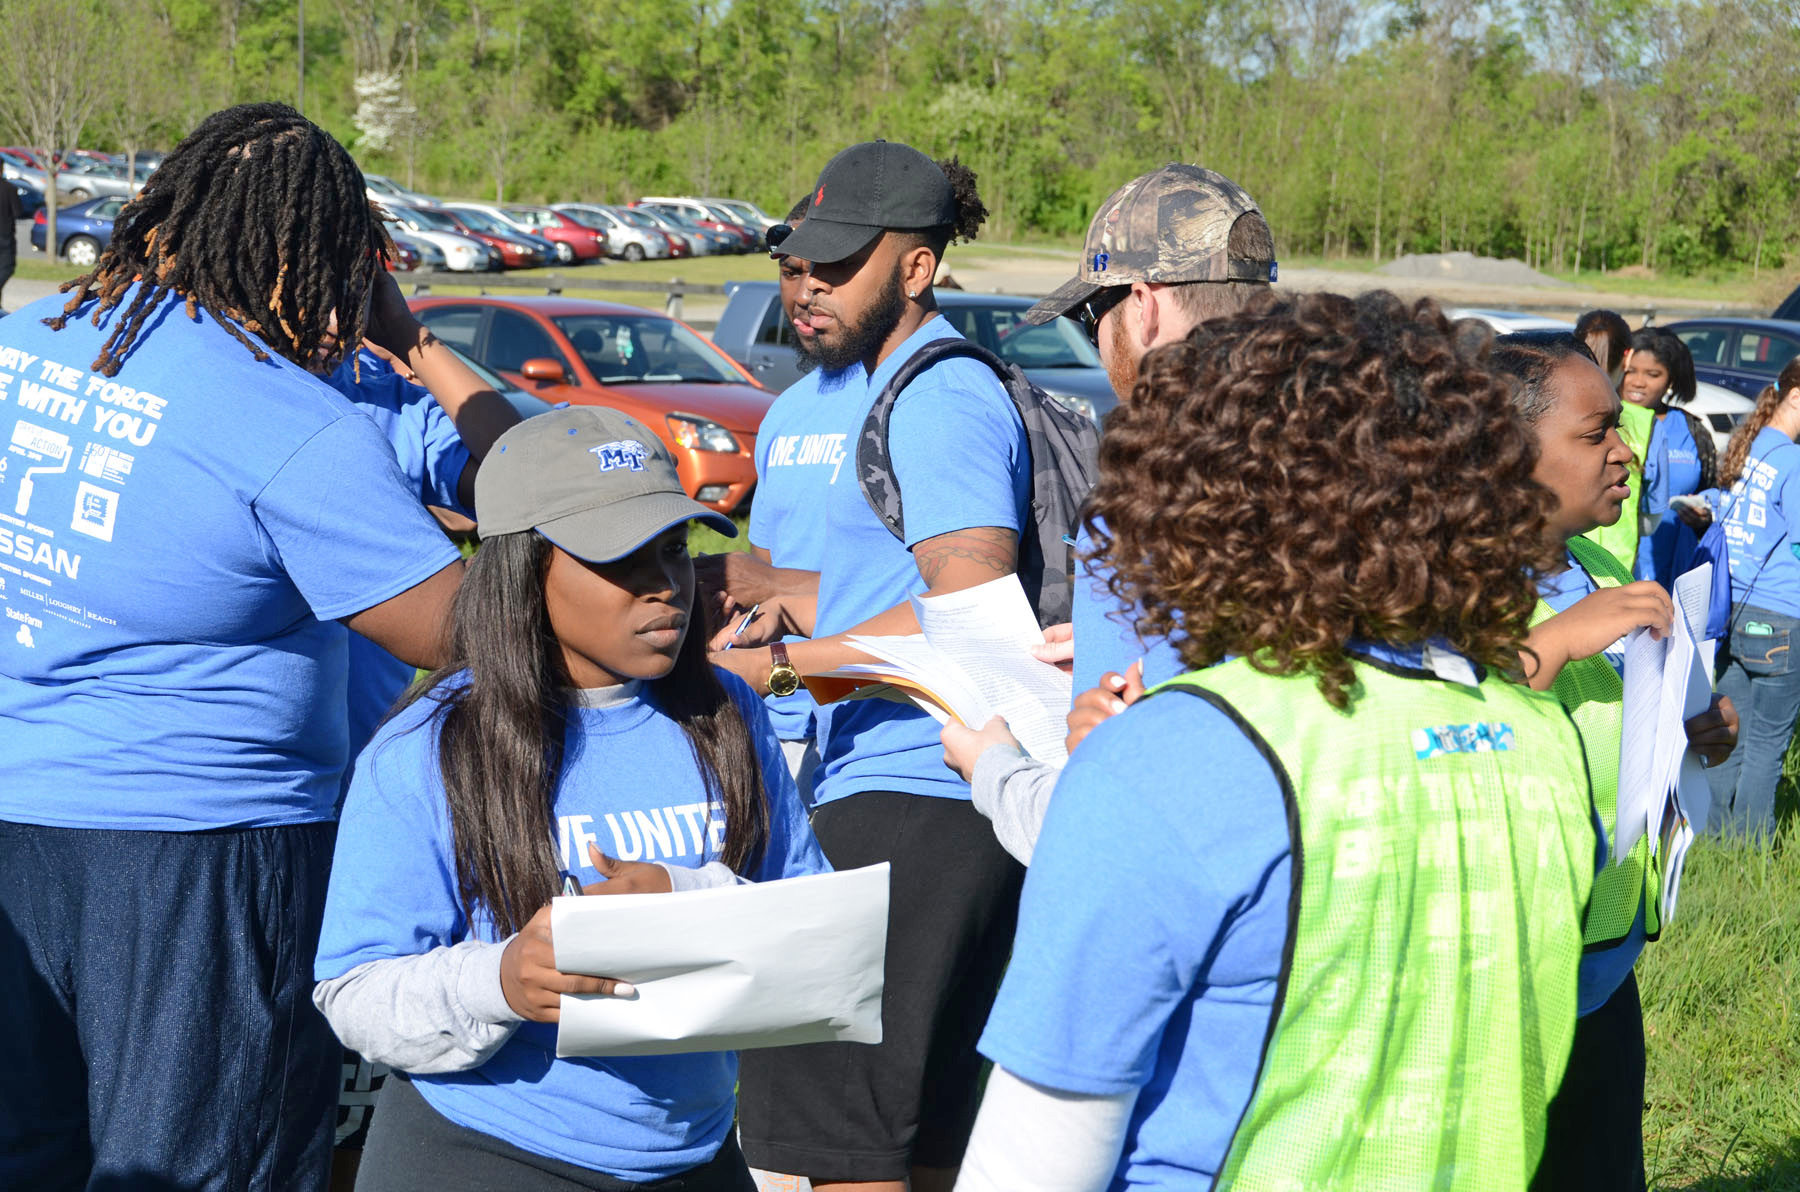 MTSU students turn out in a big way for 'BIG Event' at Old Fort Park